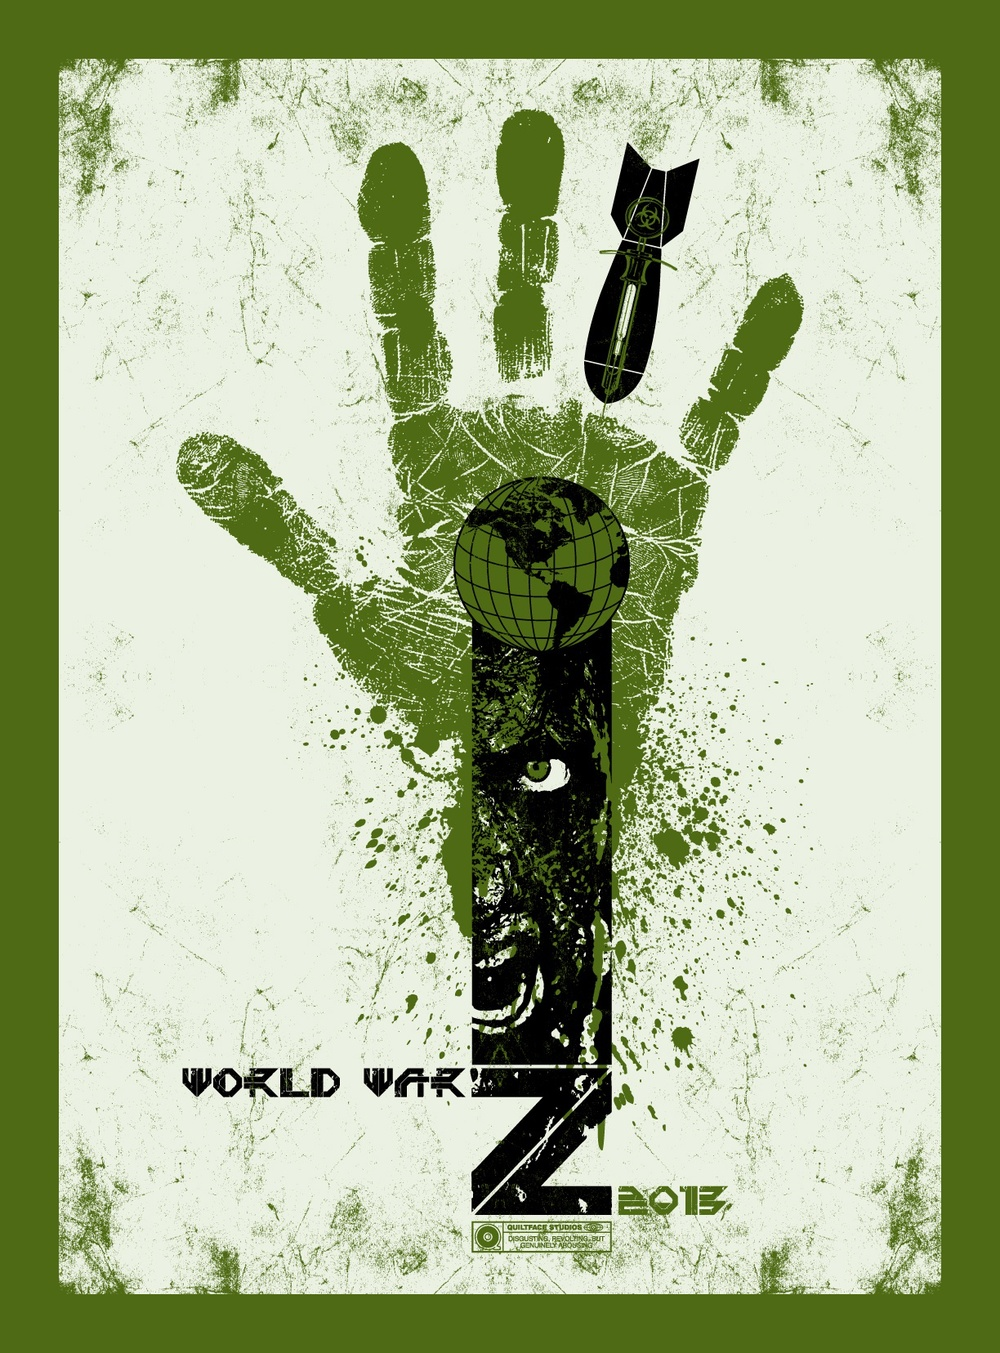 World War Z by Chris Garofalo